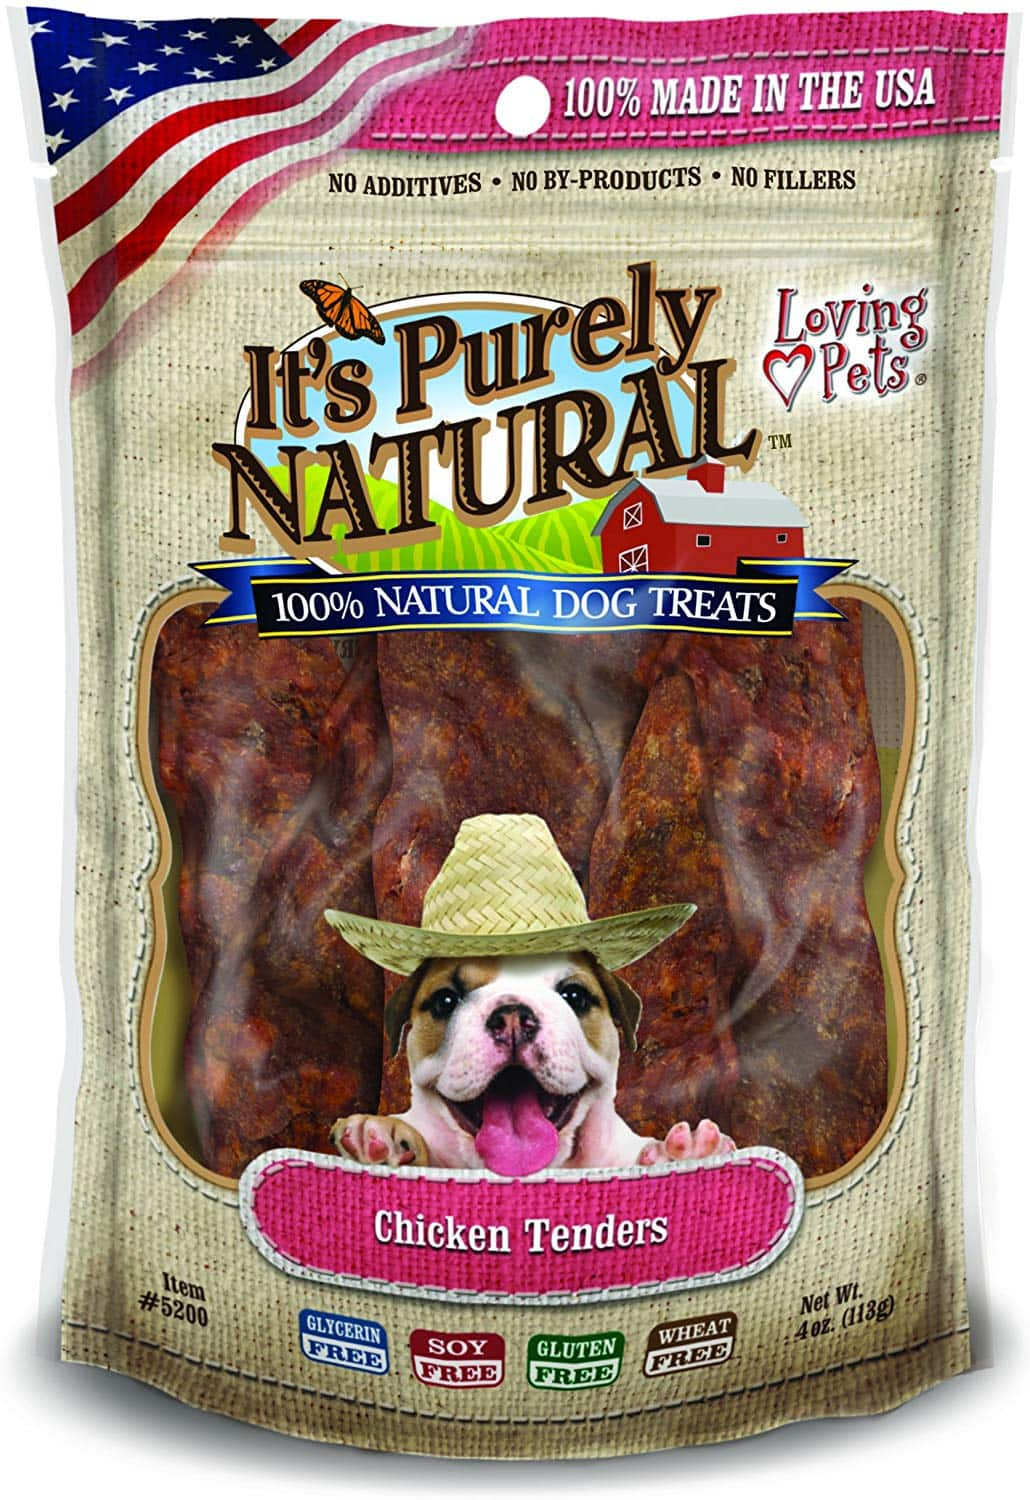 Loving Pets Products It's Purely Natural Dog Treat, 4-Ounce - $1.80 at Amazon + free shipping with prime